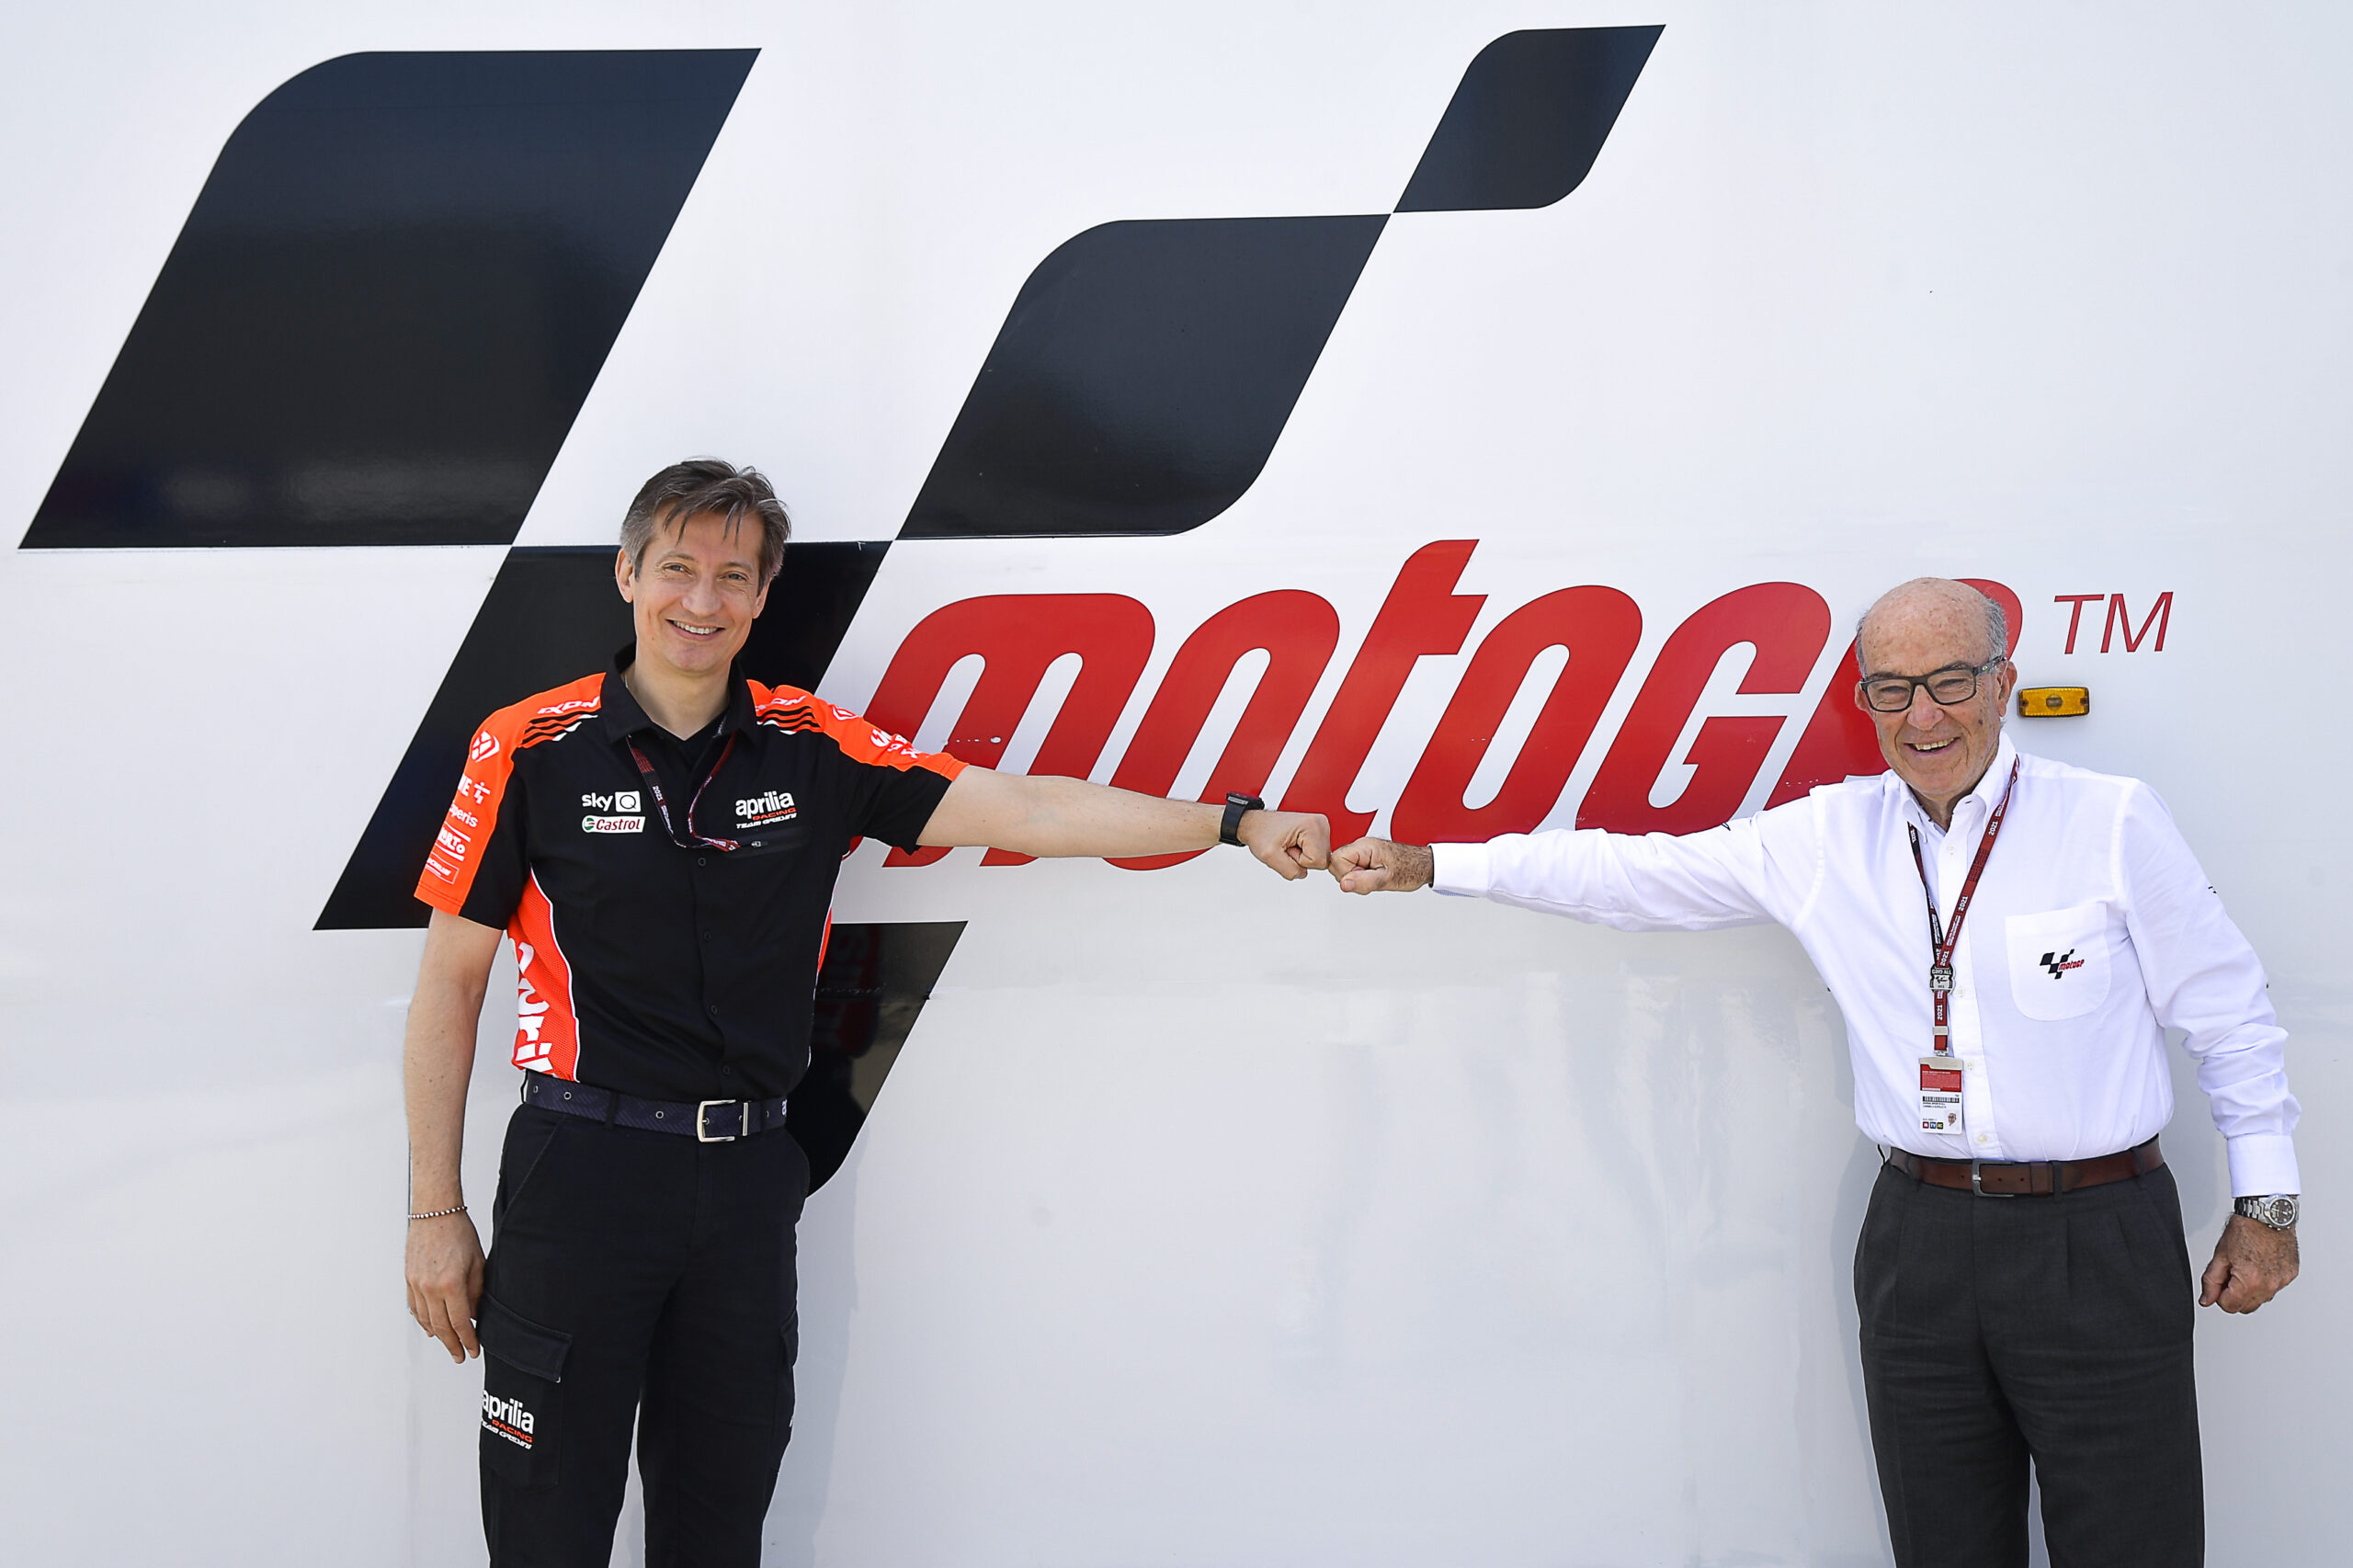 Aprilia Racing Signs Agreement With Dorna Through 2026